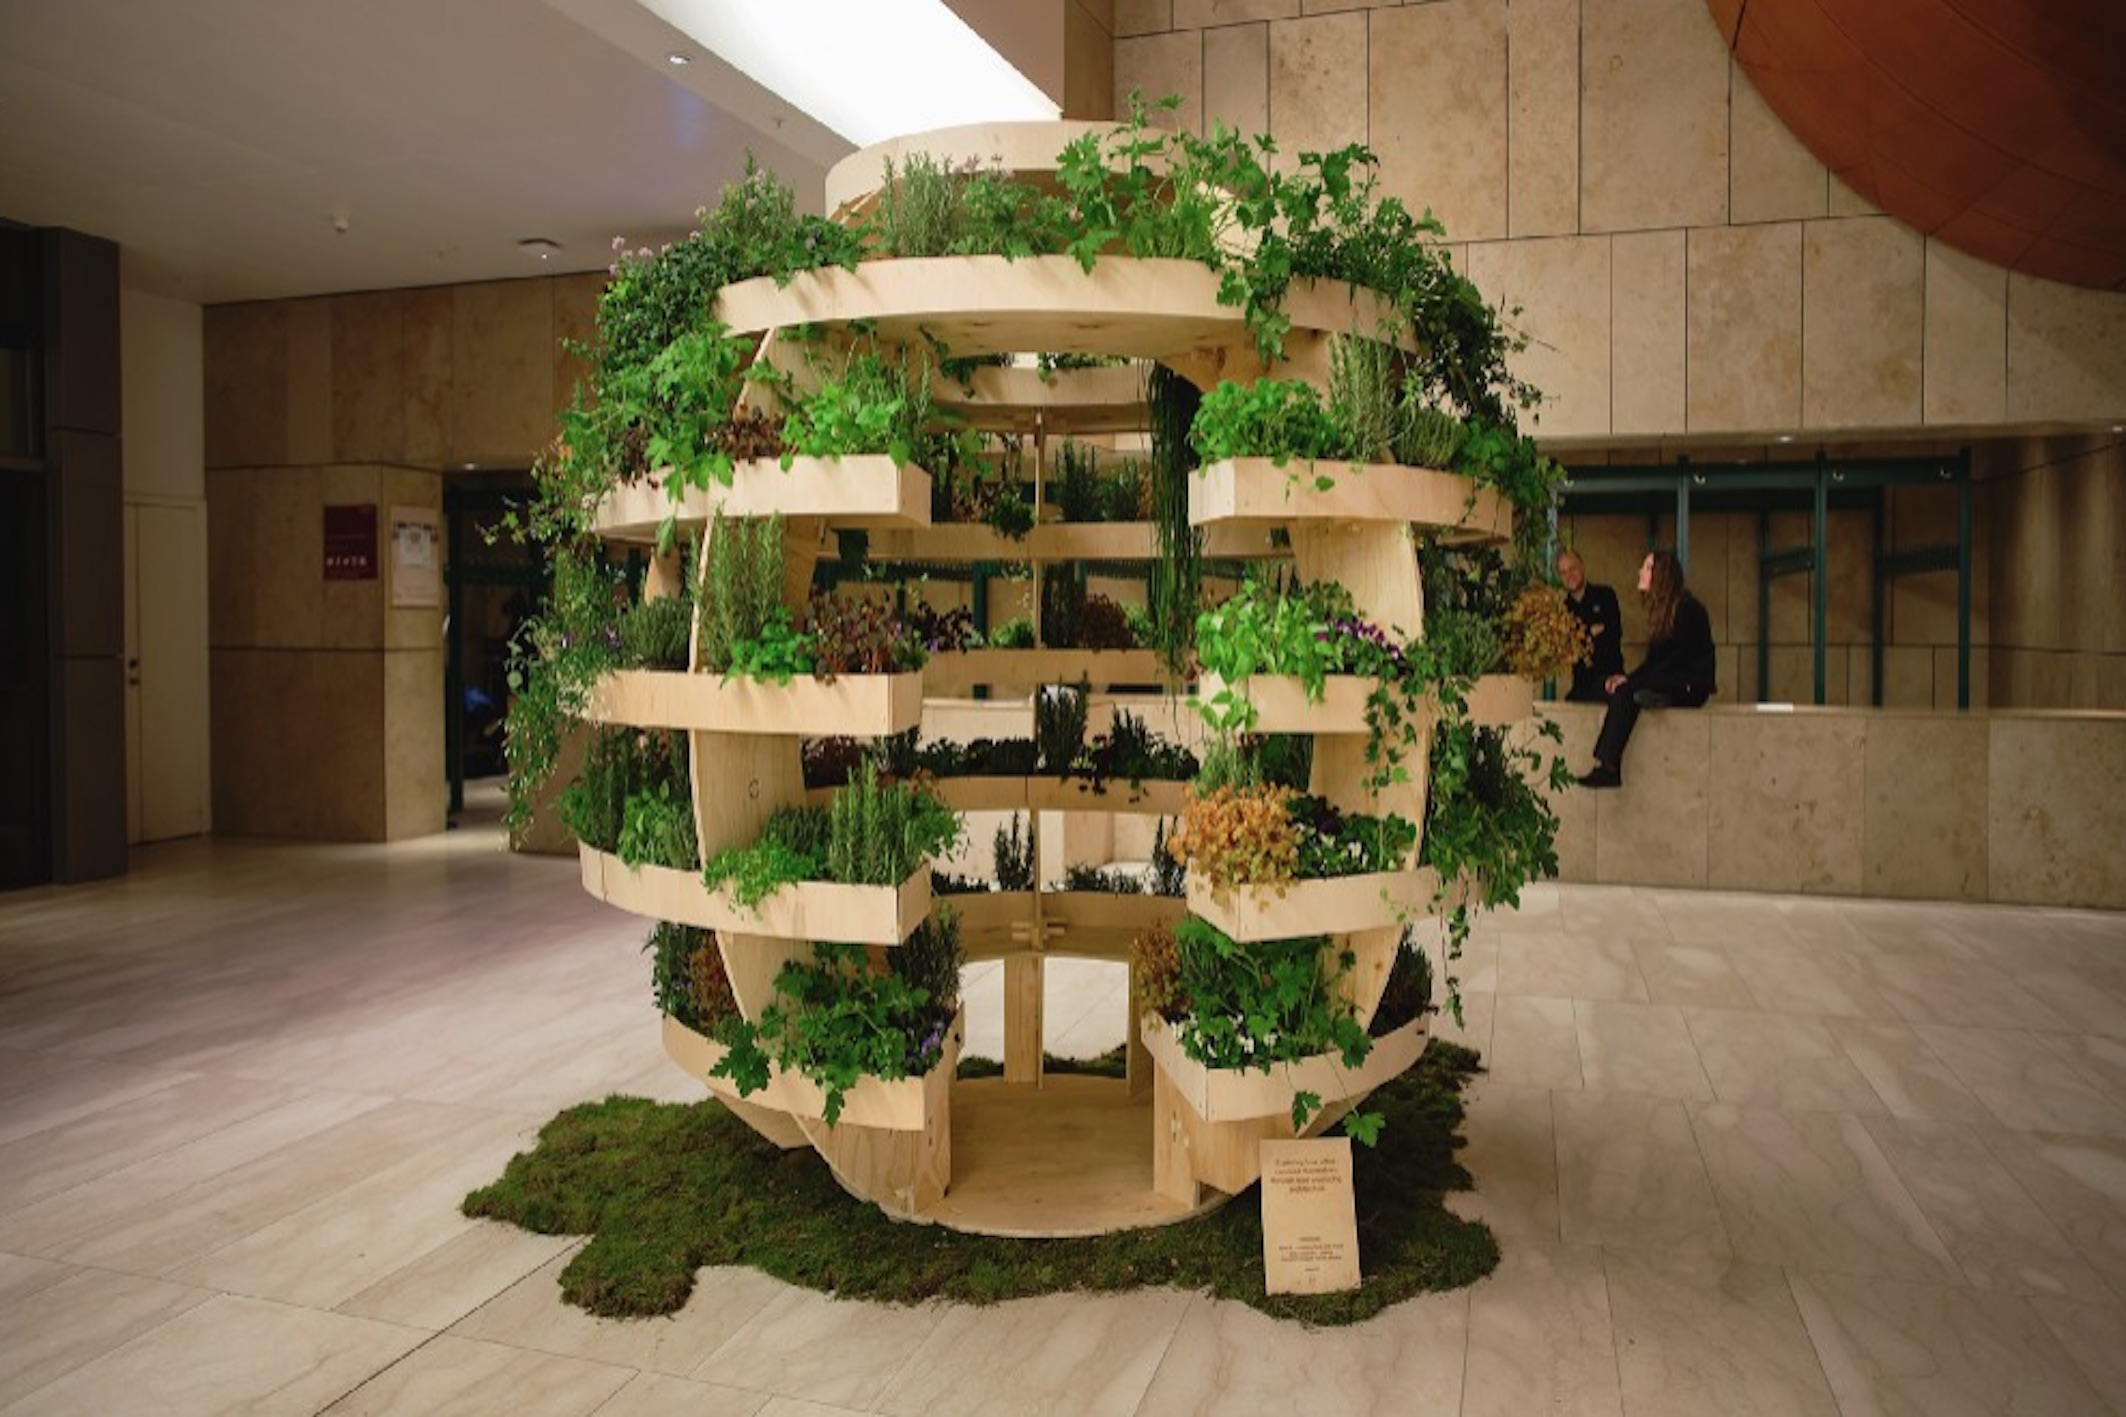 IKEA garden sphere free plans for a sustainable garden